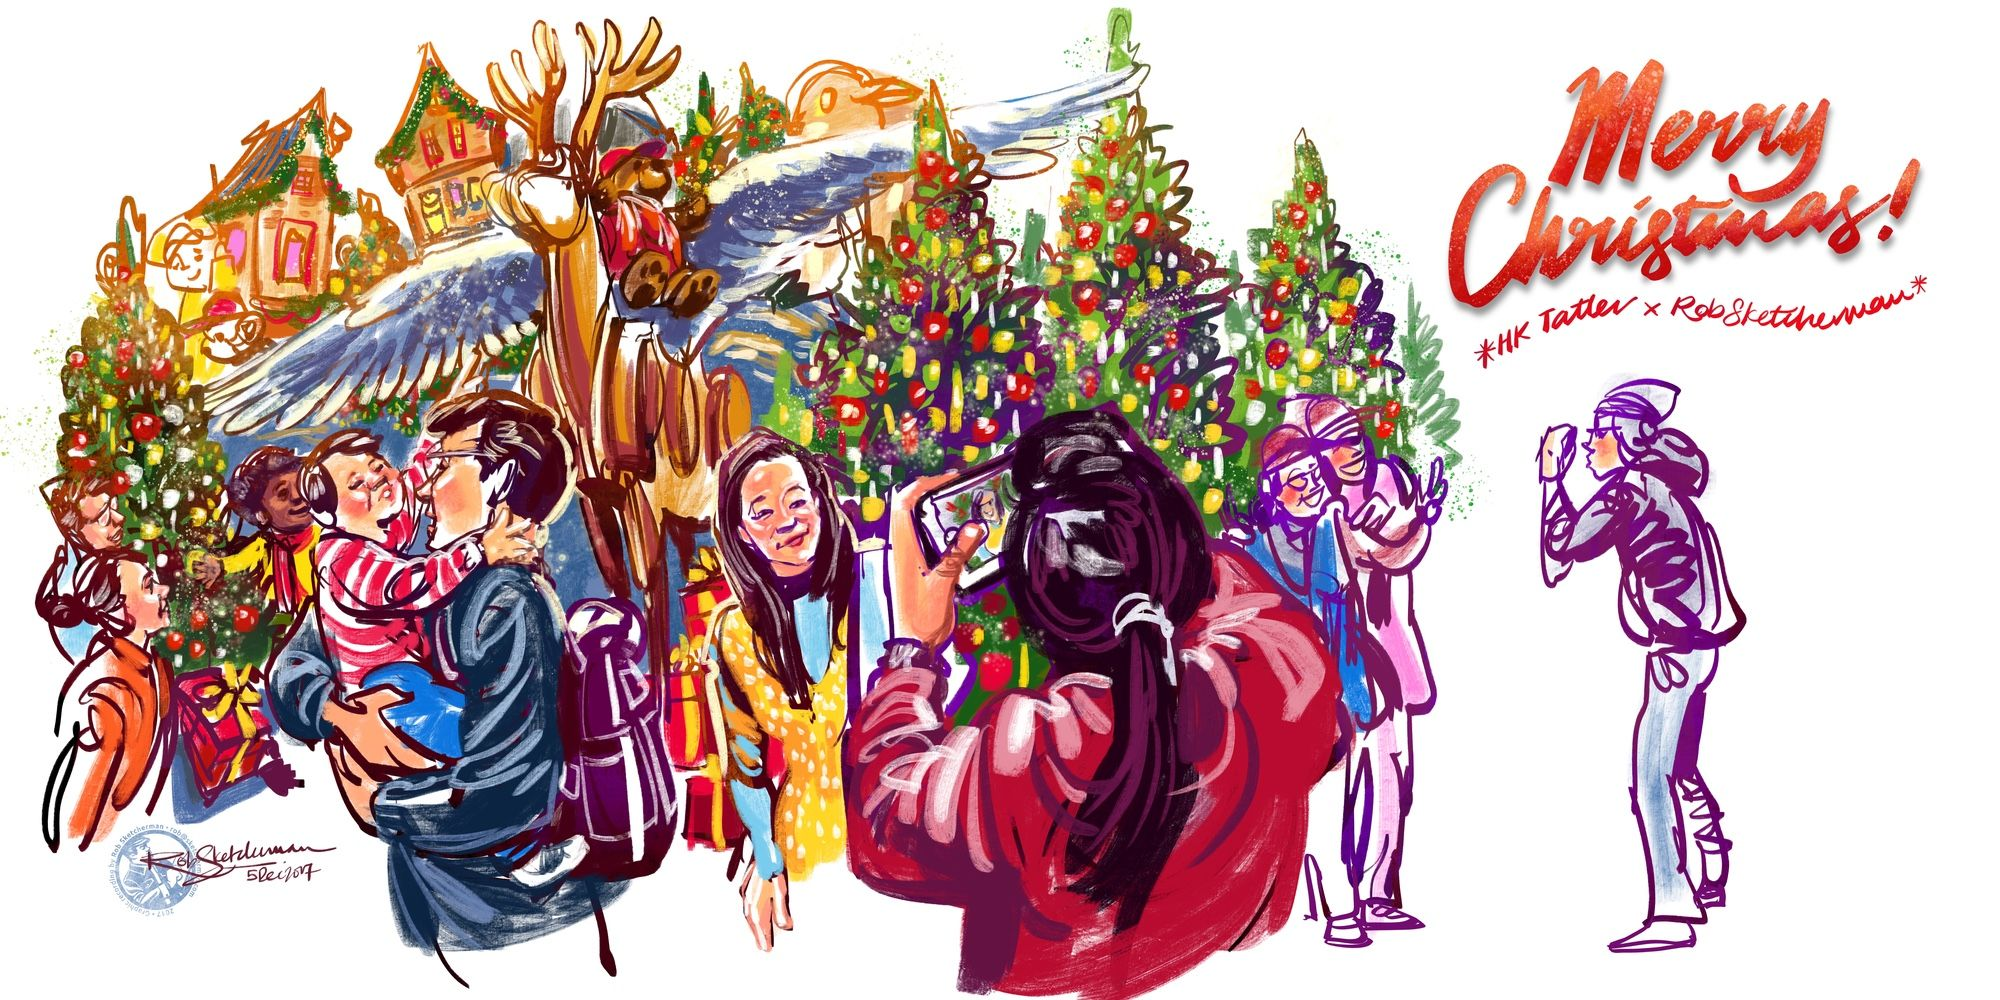 Art Talk: Season's Greetings From Rob Sketcherman